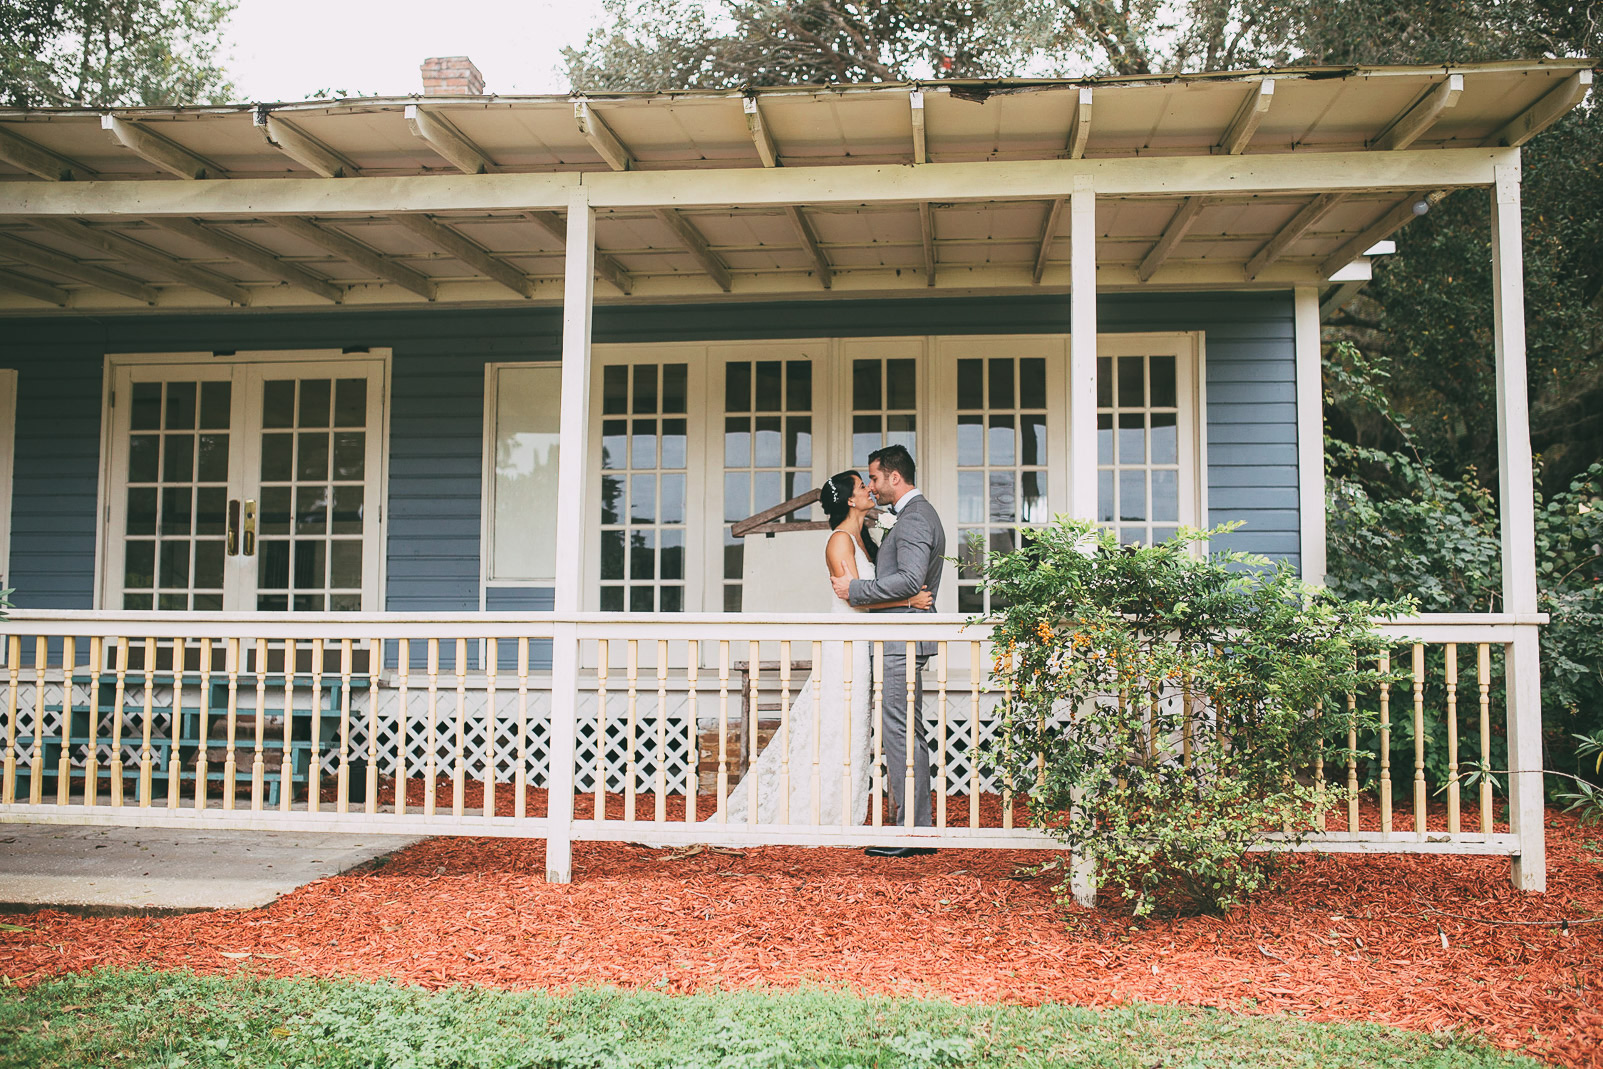 bride and groom posing on porch